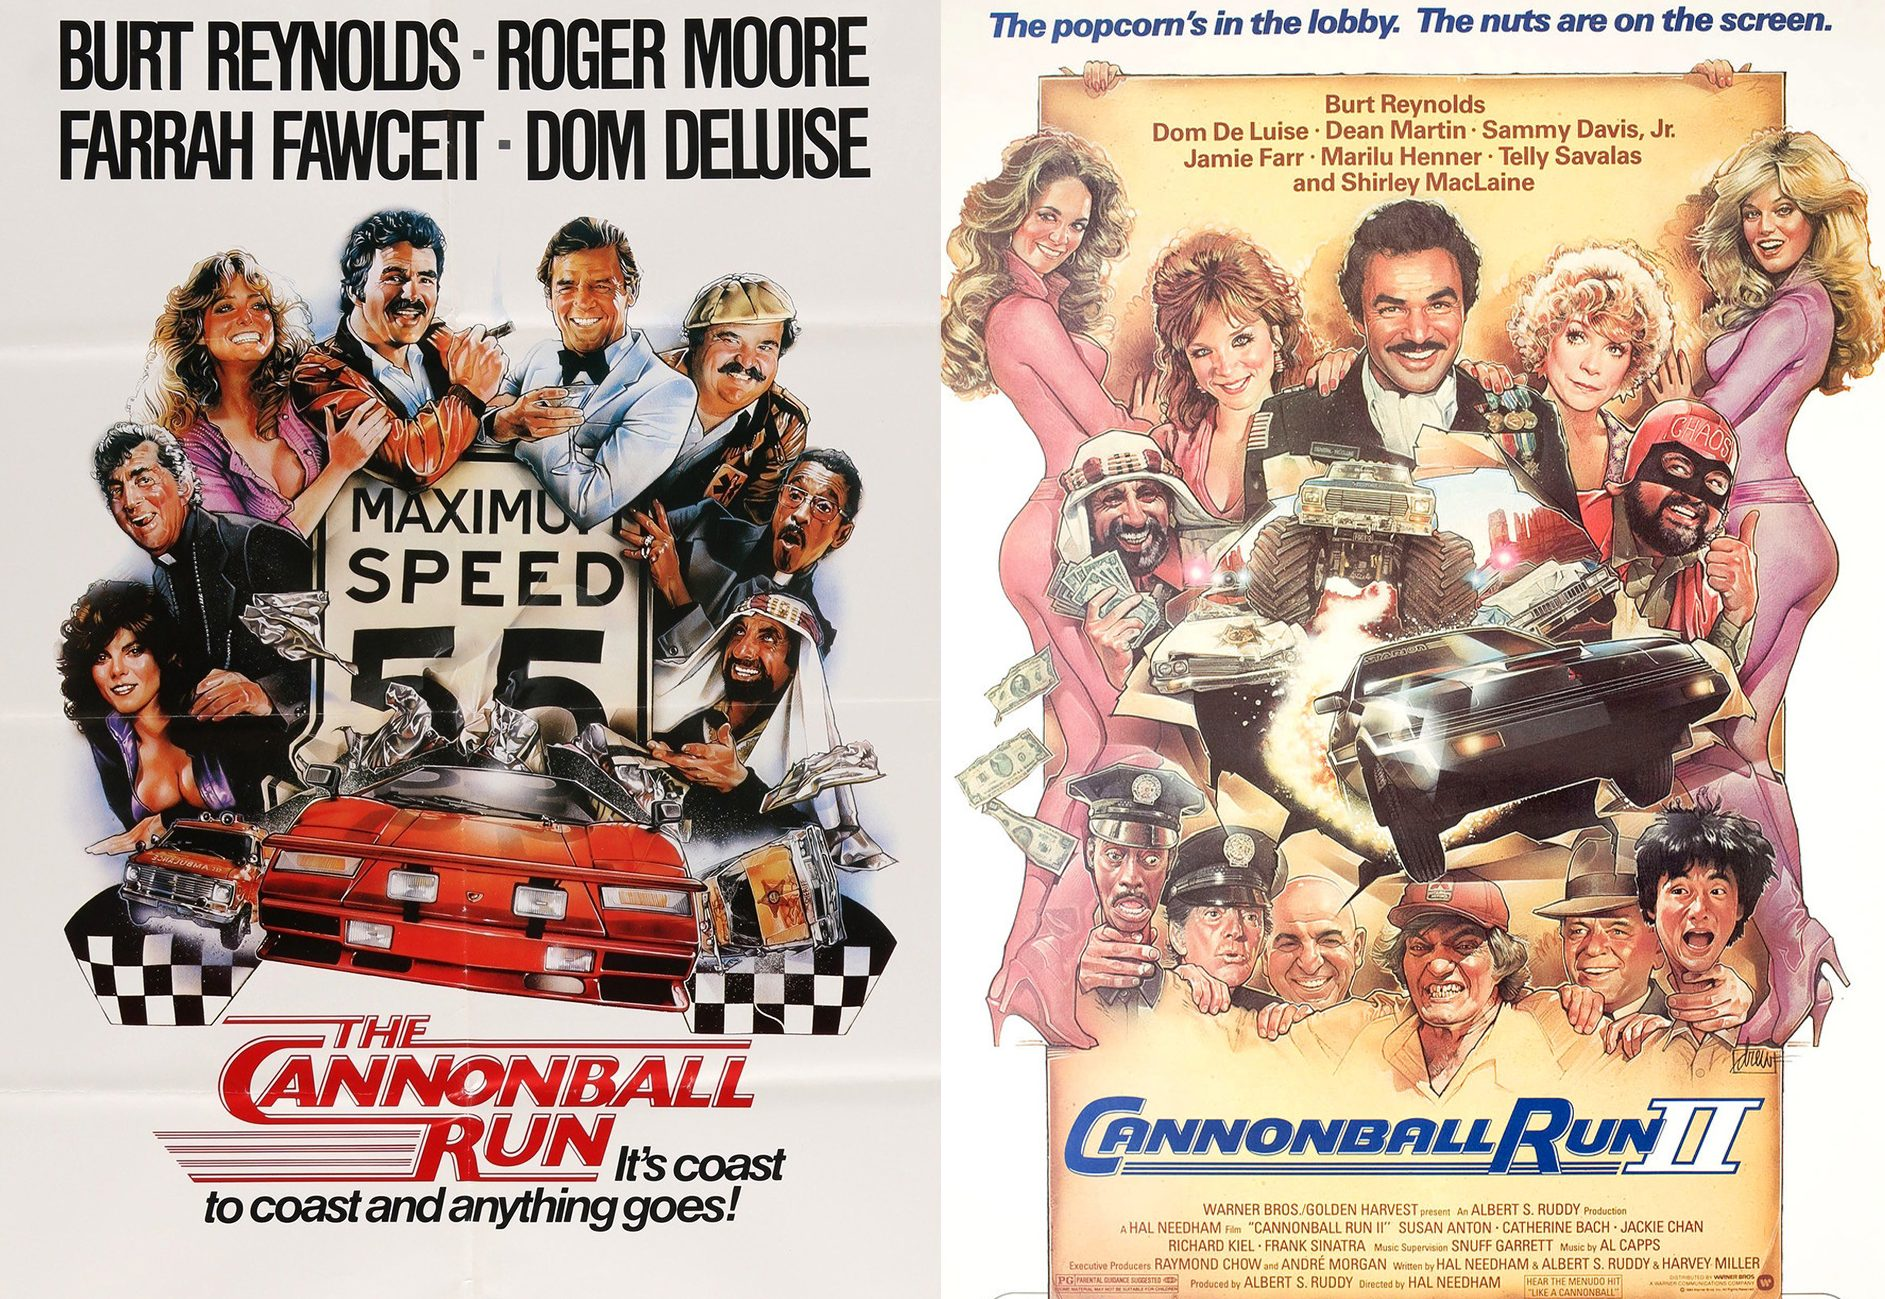 Cannonball Run 1 e1627036529896 20 Fun Facts You Didn't Know About The Cannonball Run Films